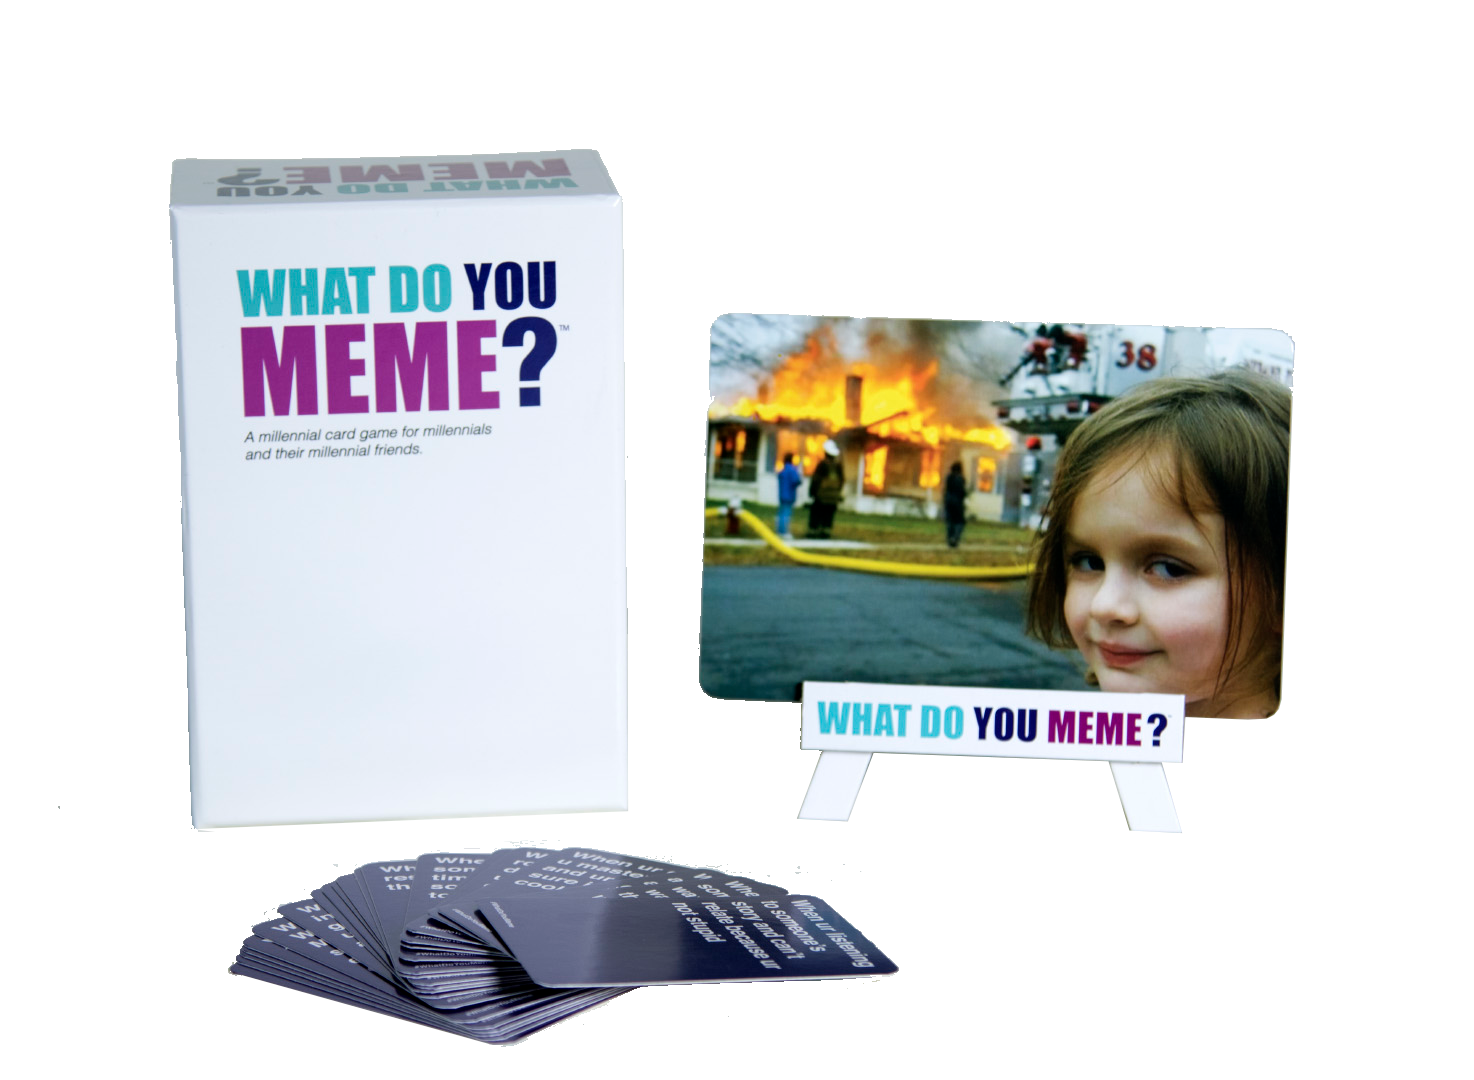 3839e03b cd3f 44f4 a1f1 95e1f7ab8b4f what do you meme? adult party game, card games amazon canada